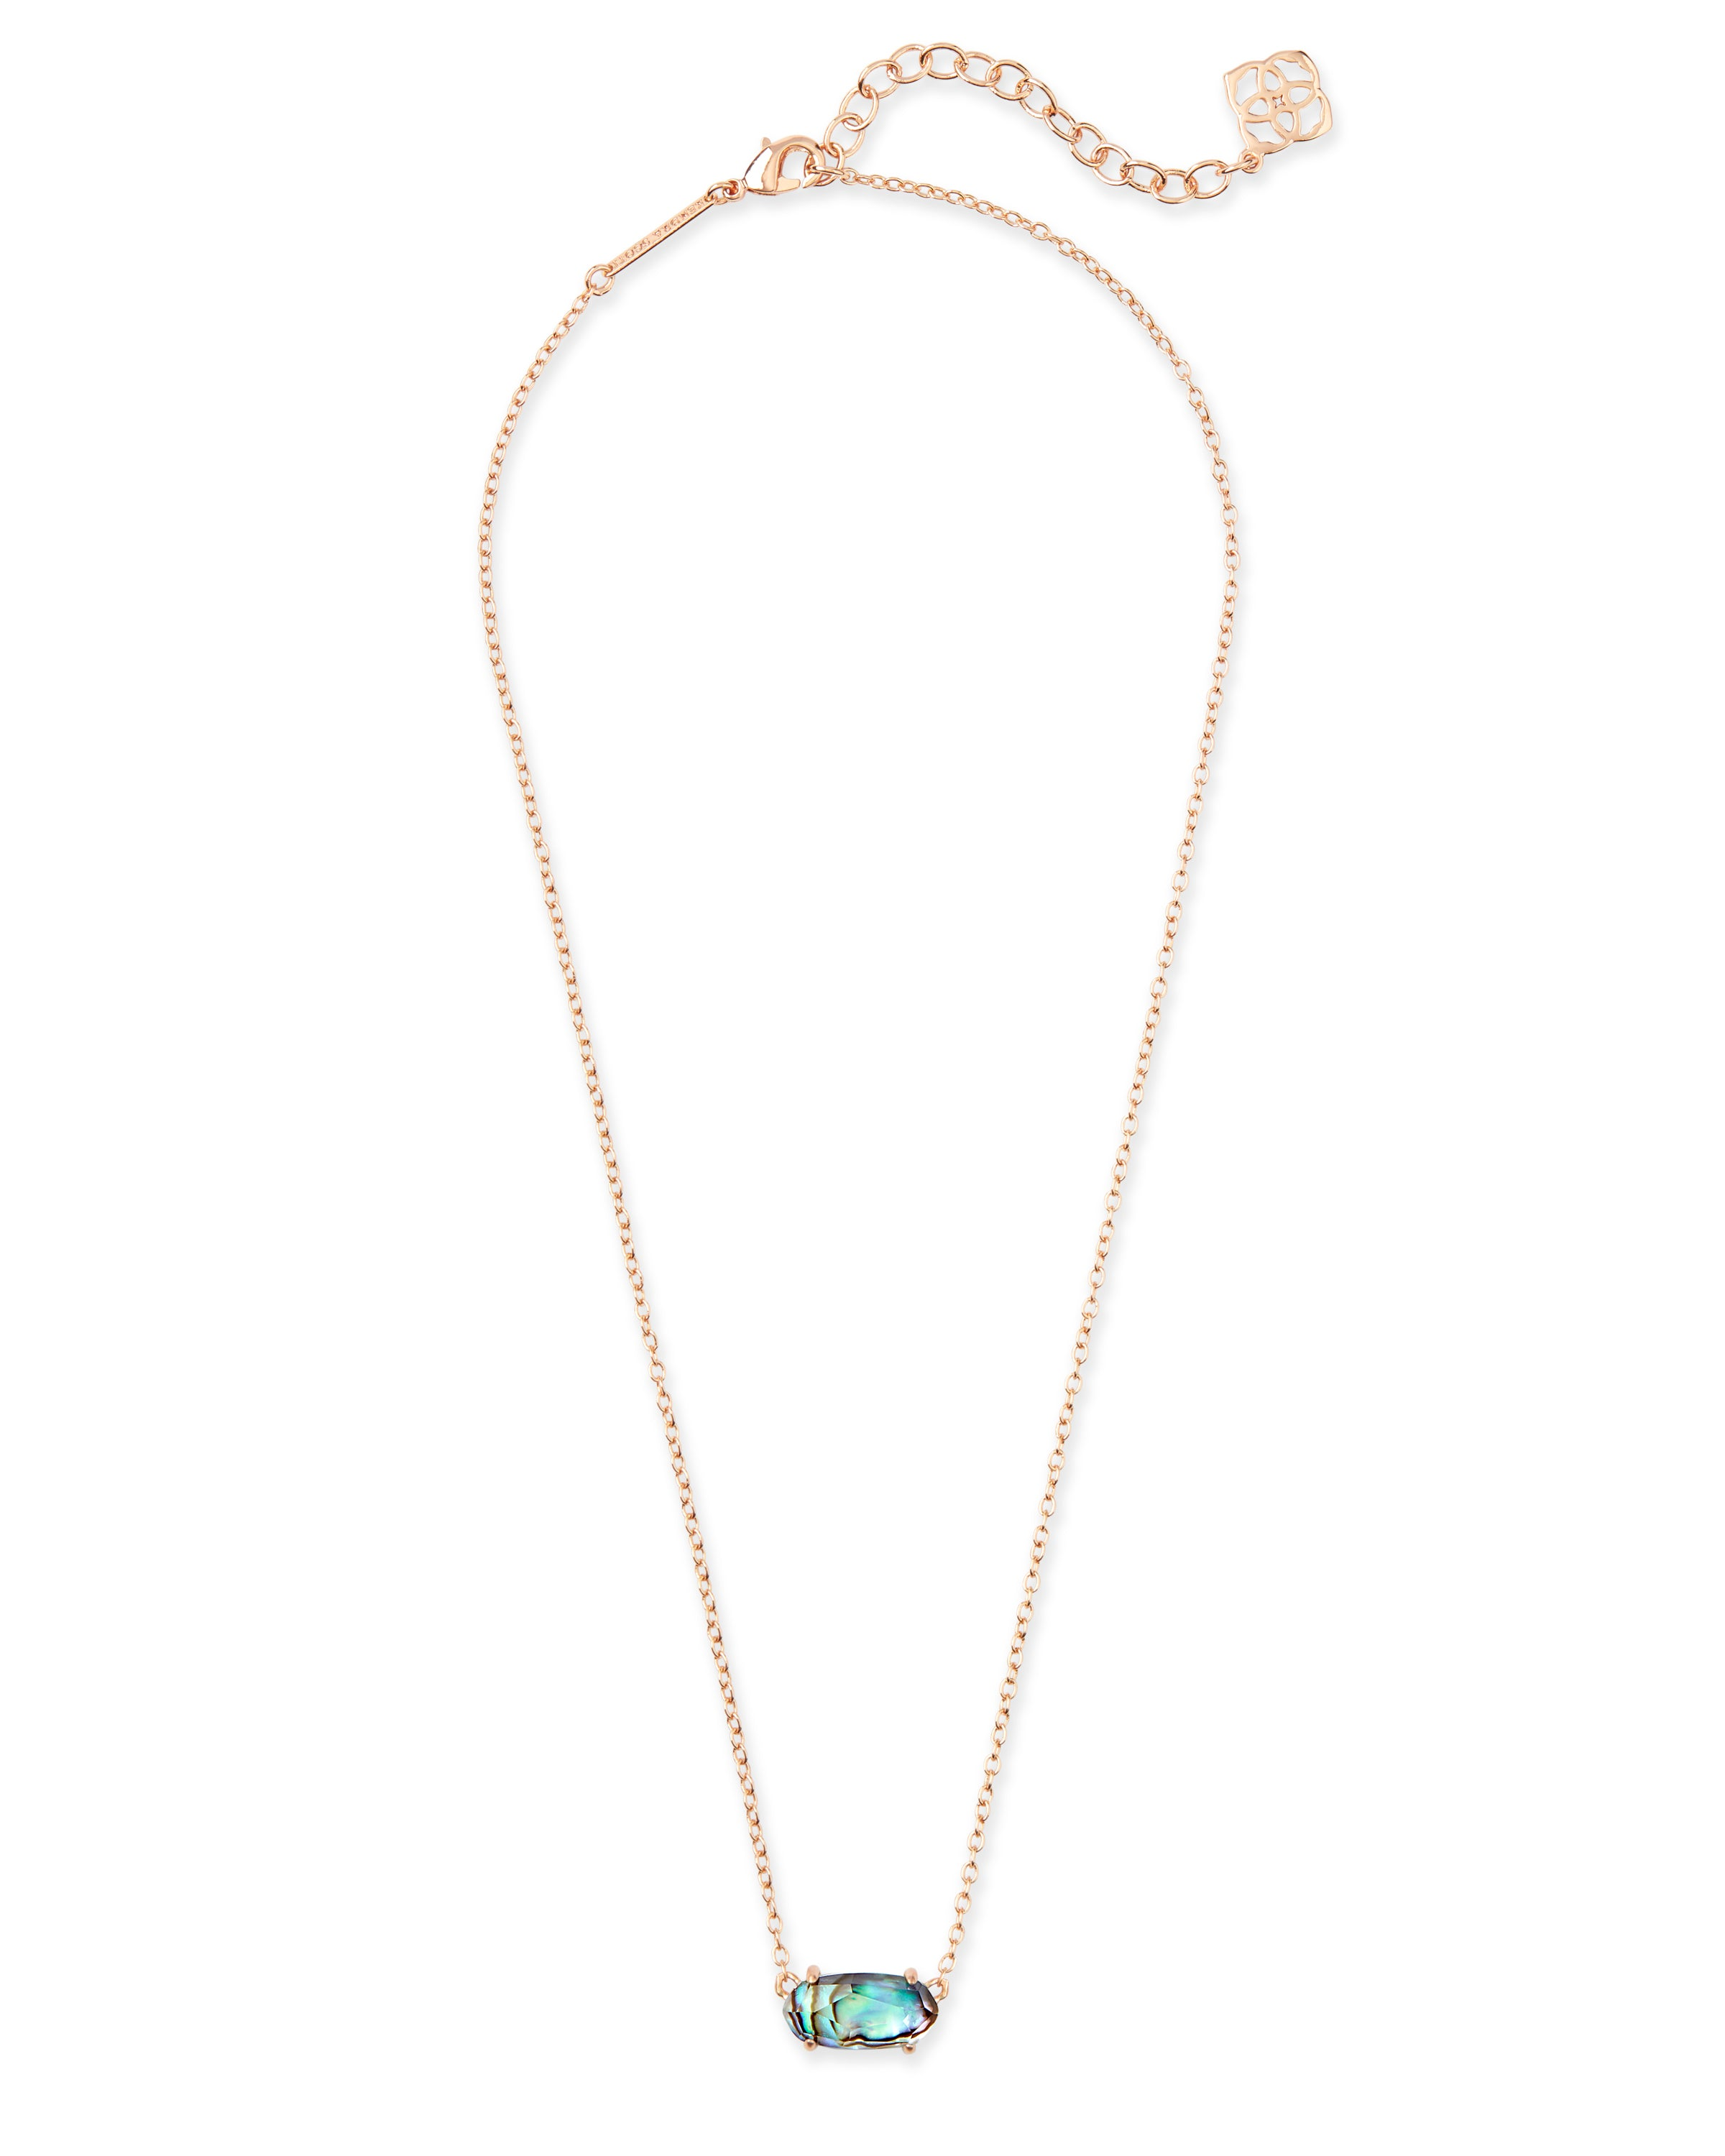 Kendra Scott Ever Rose Gold Pendant Necklace In Abalone Shell